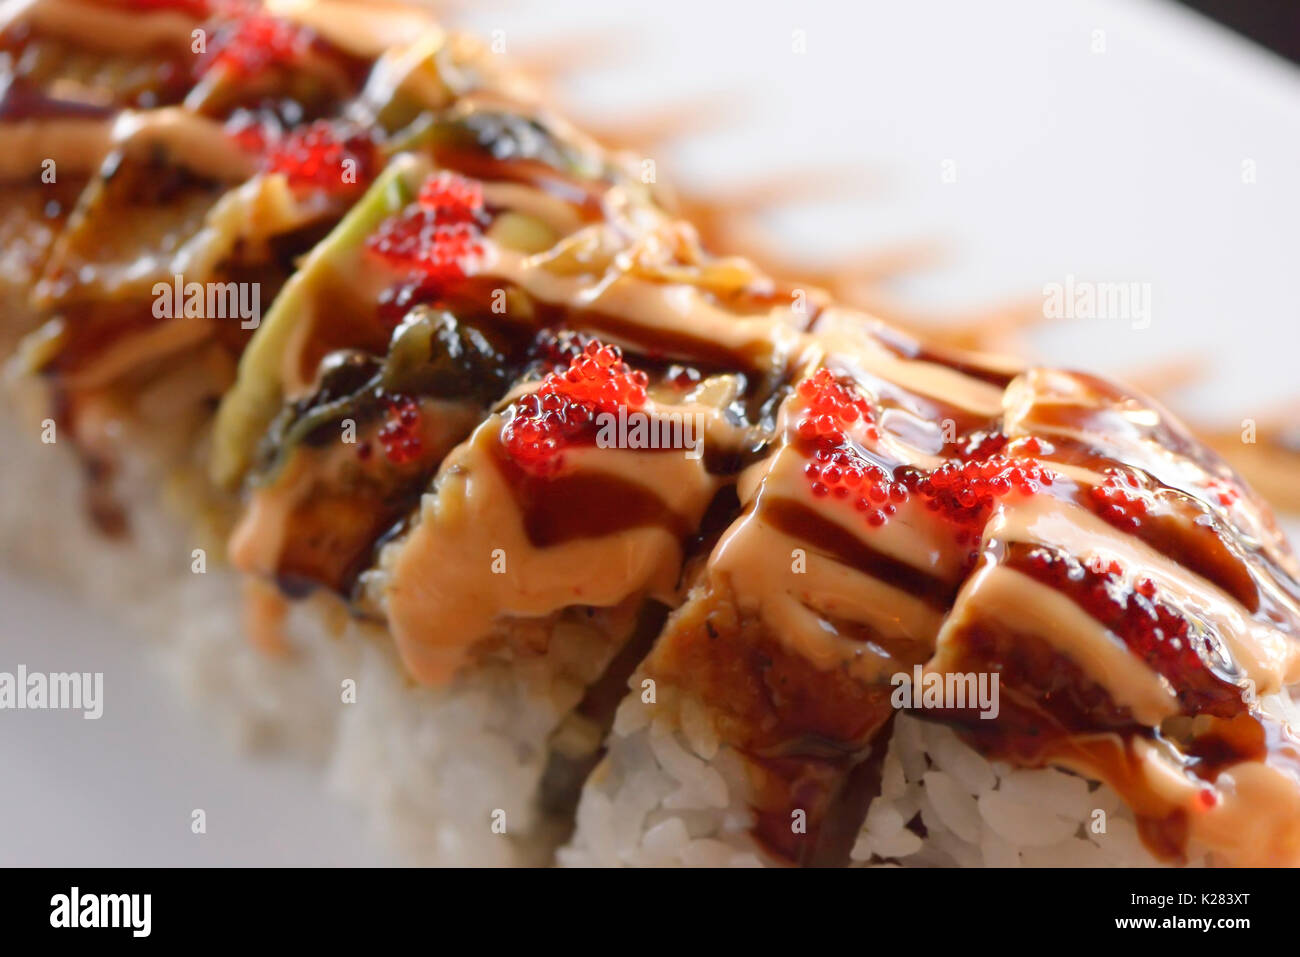 Artistic closeup of sushi red dragon roll with salmon and caviar - Stock Image